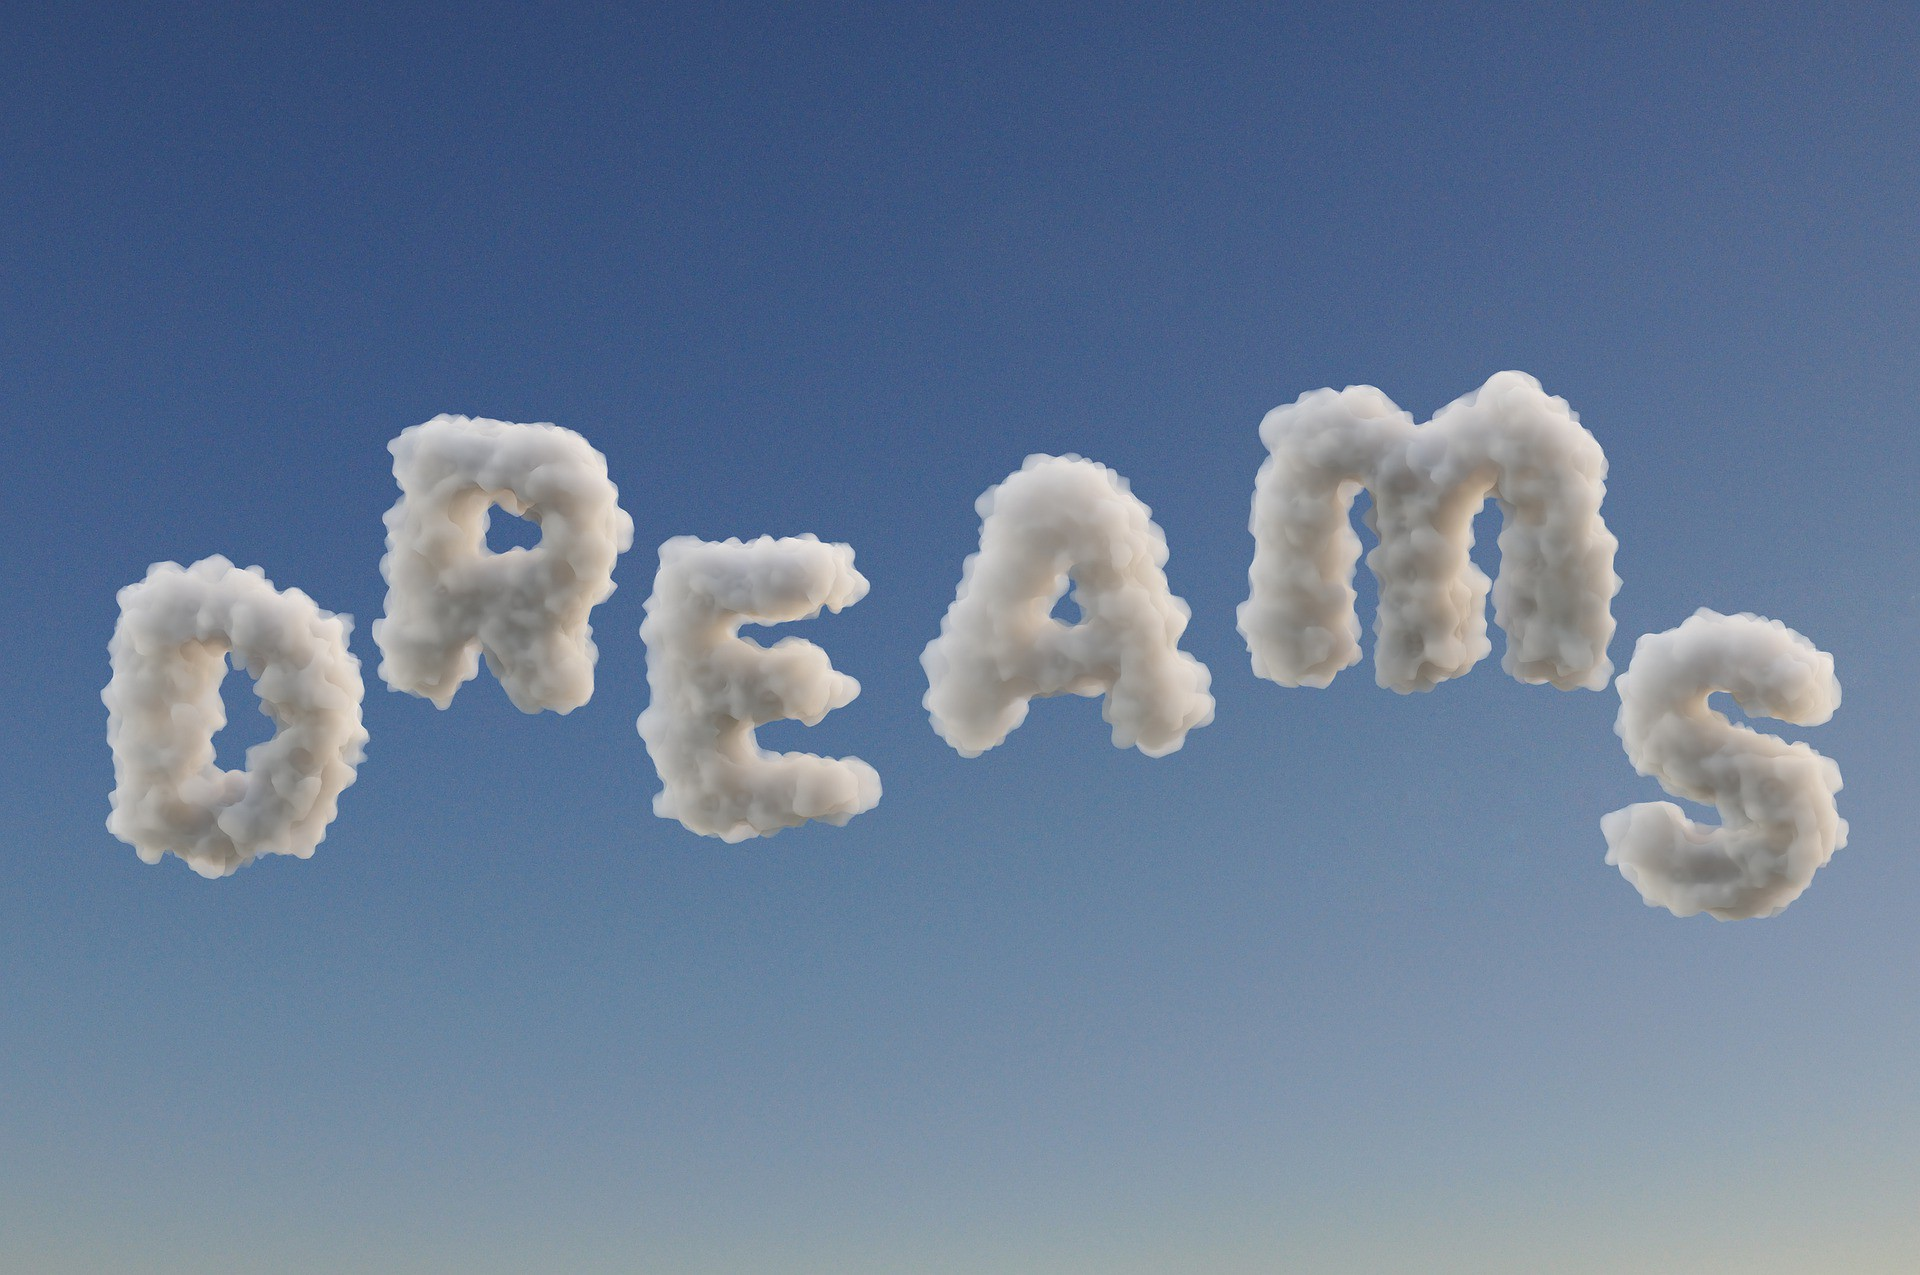 Dreams wording written on the sky background